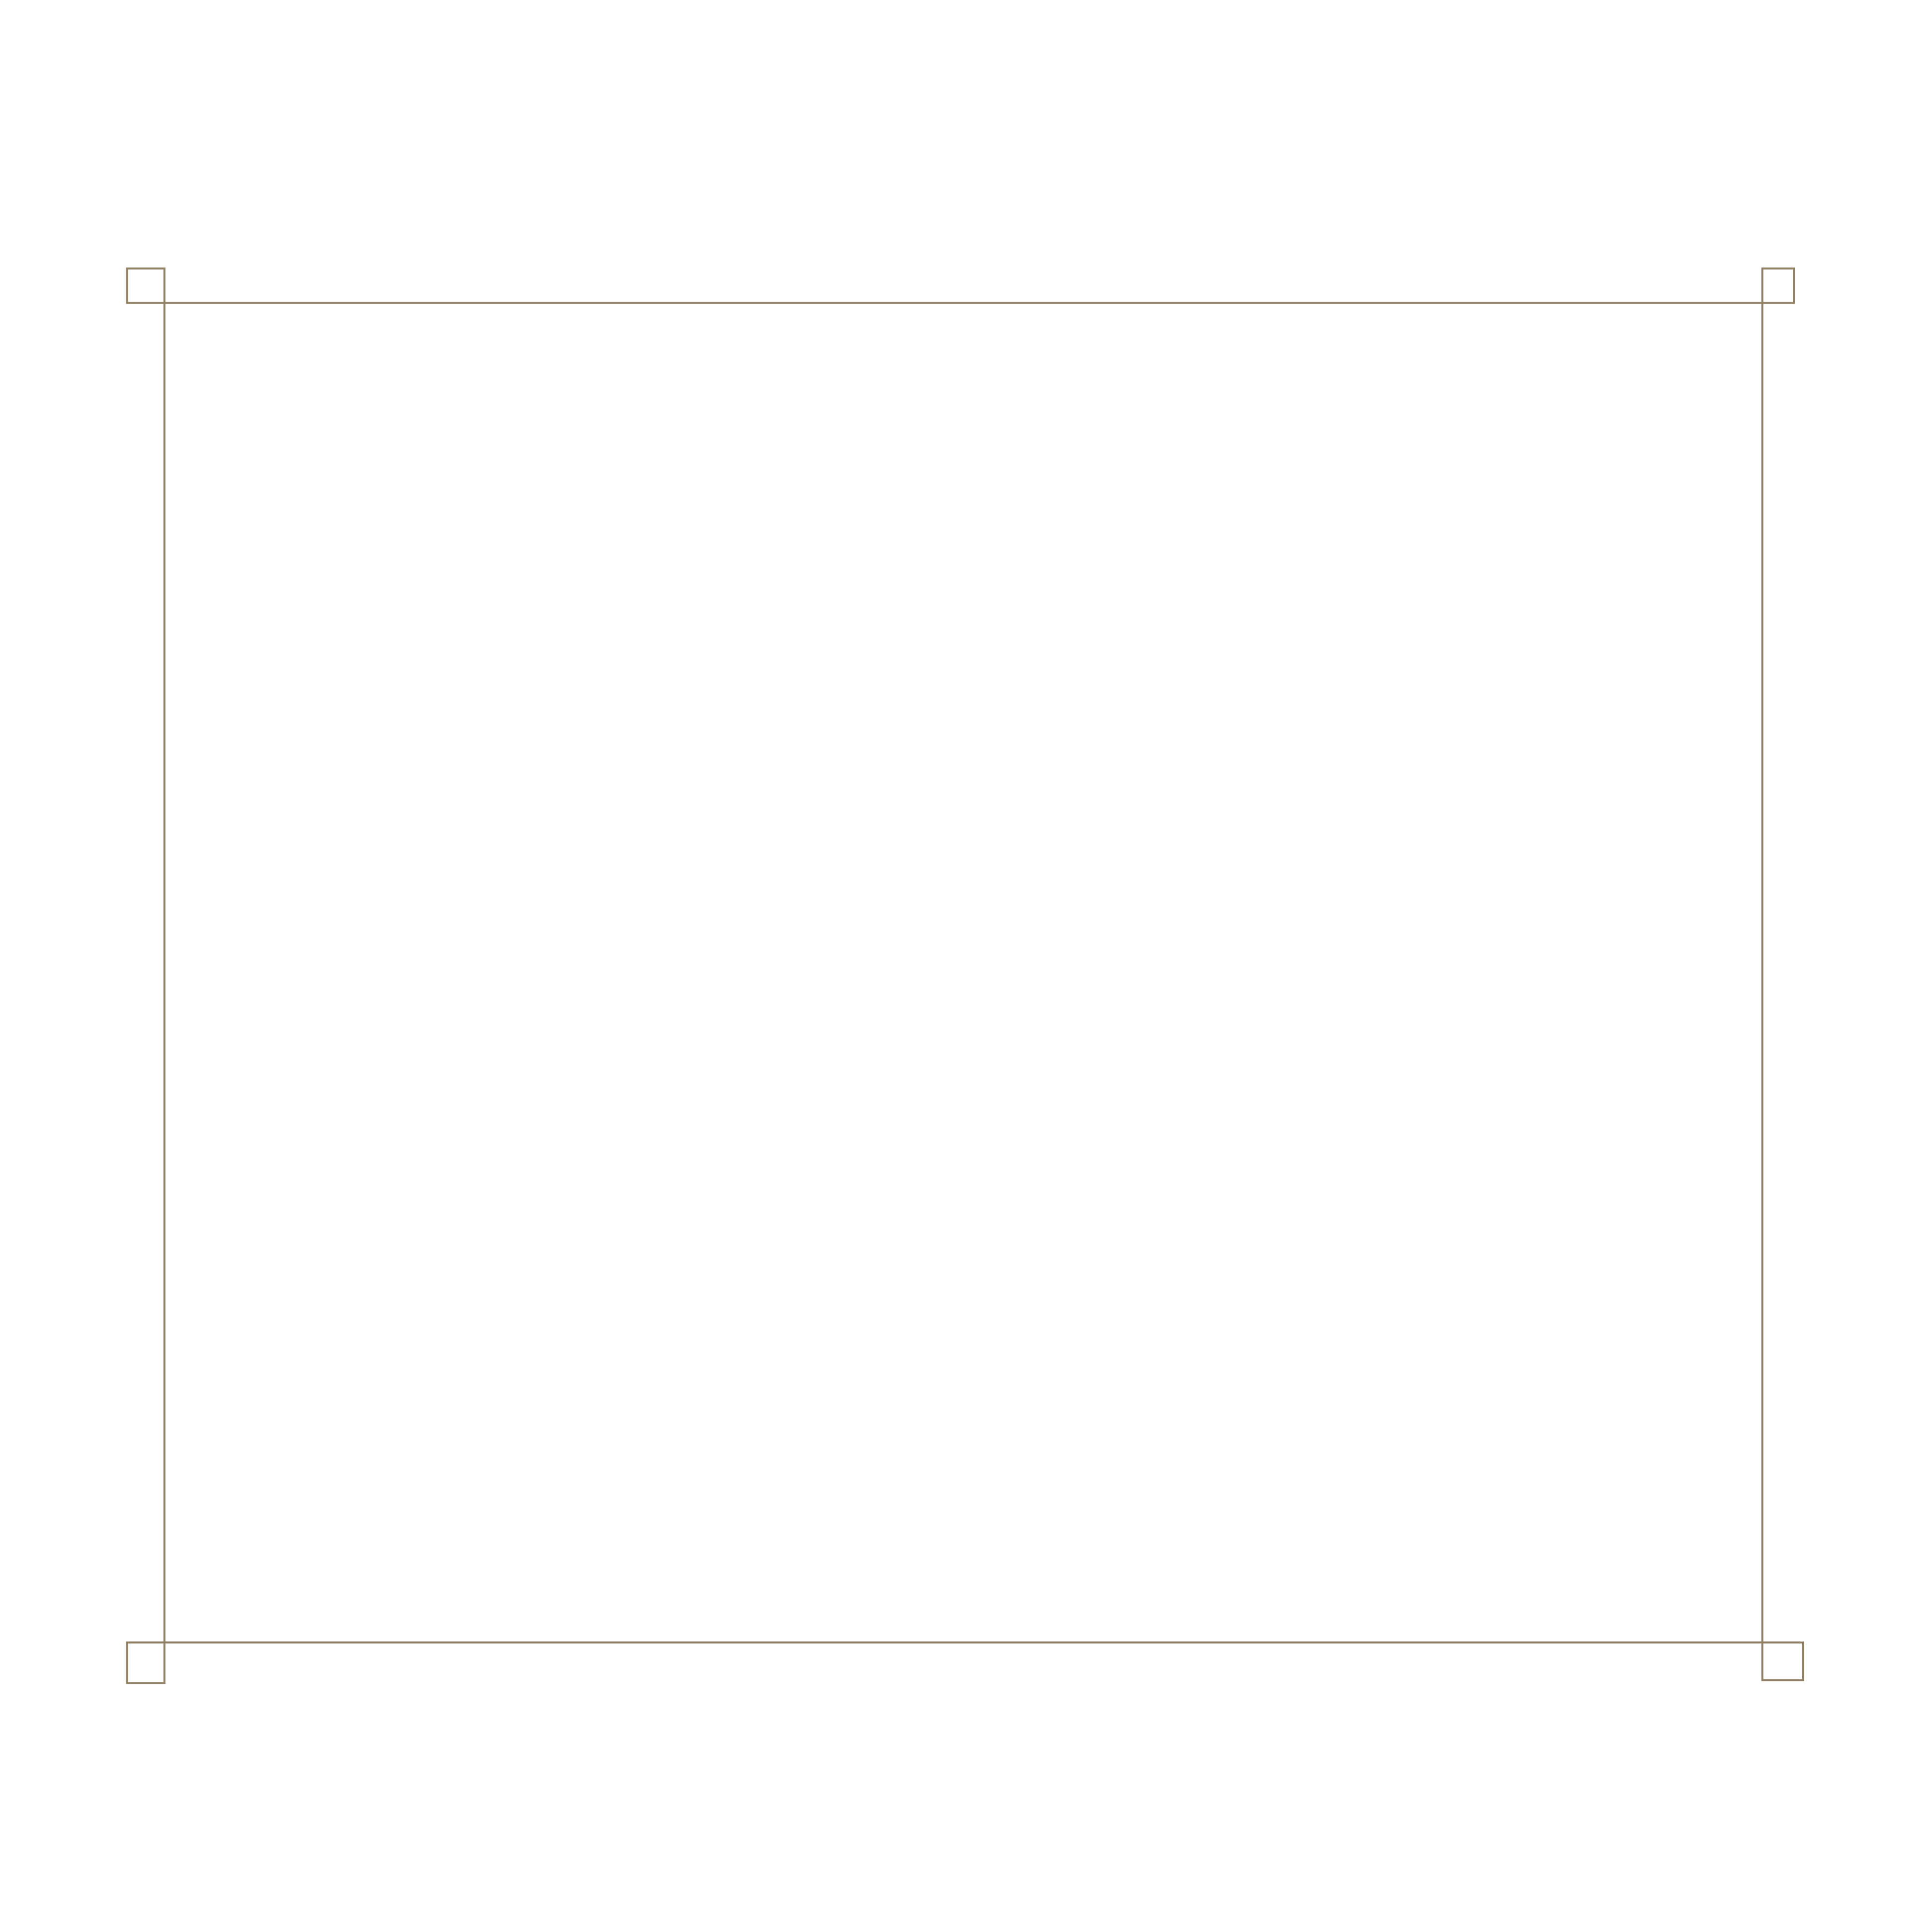 Download white border frame hd hq png image in different resolution white border frame hd png image thecheapjerseys Images